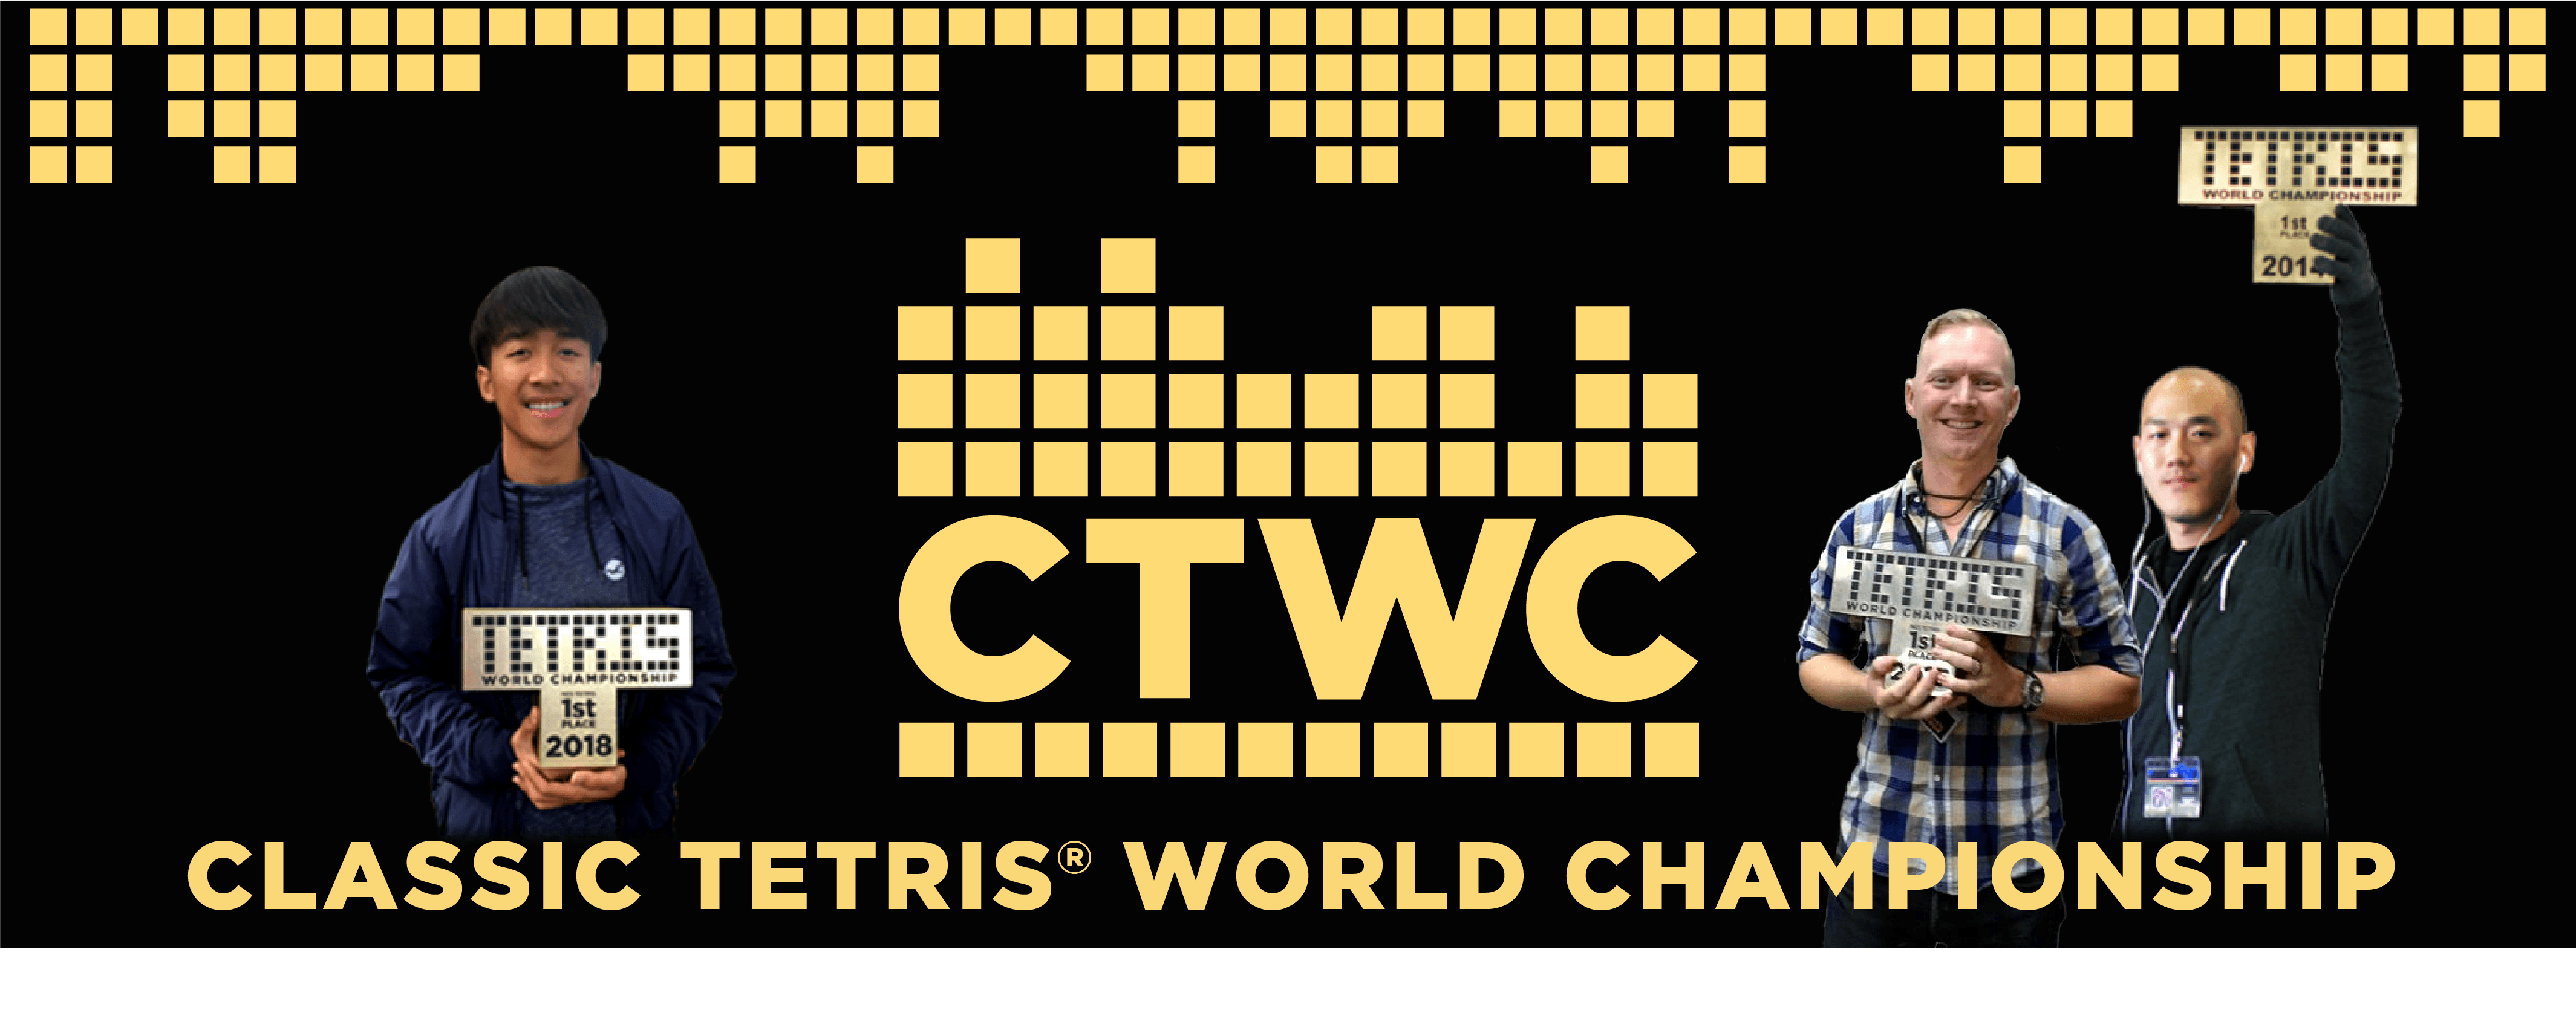 Harry Hong Wins 2014 CTWC – Classic Tetris World Championship